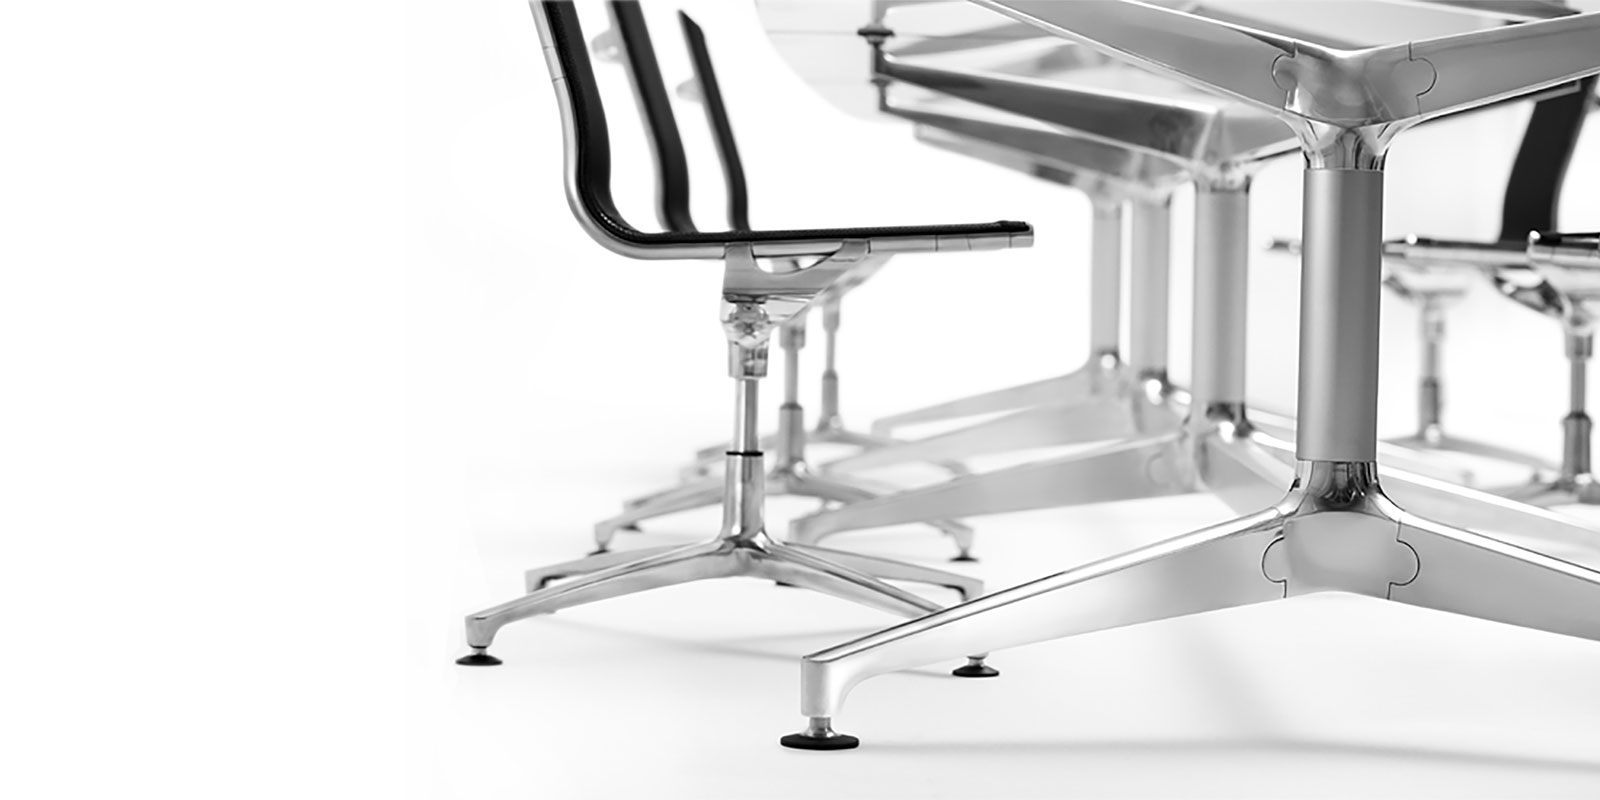 JOINT CHAIR & TABLE